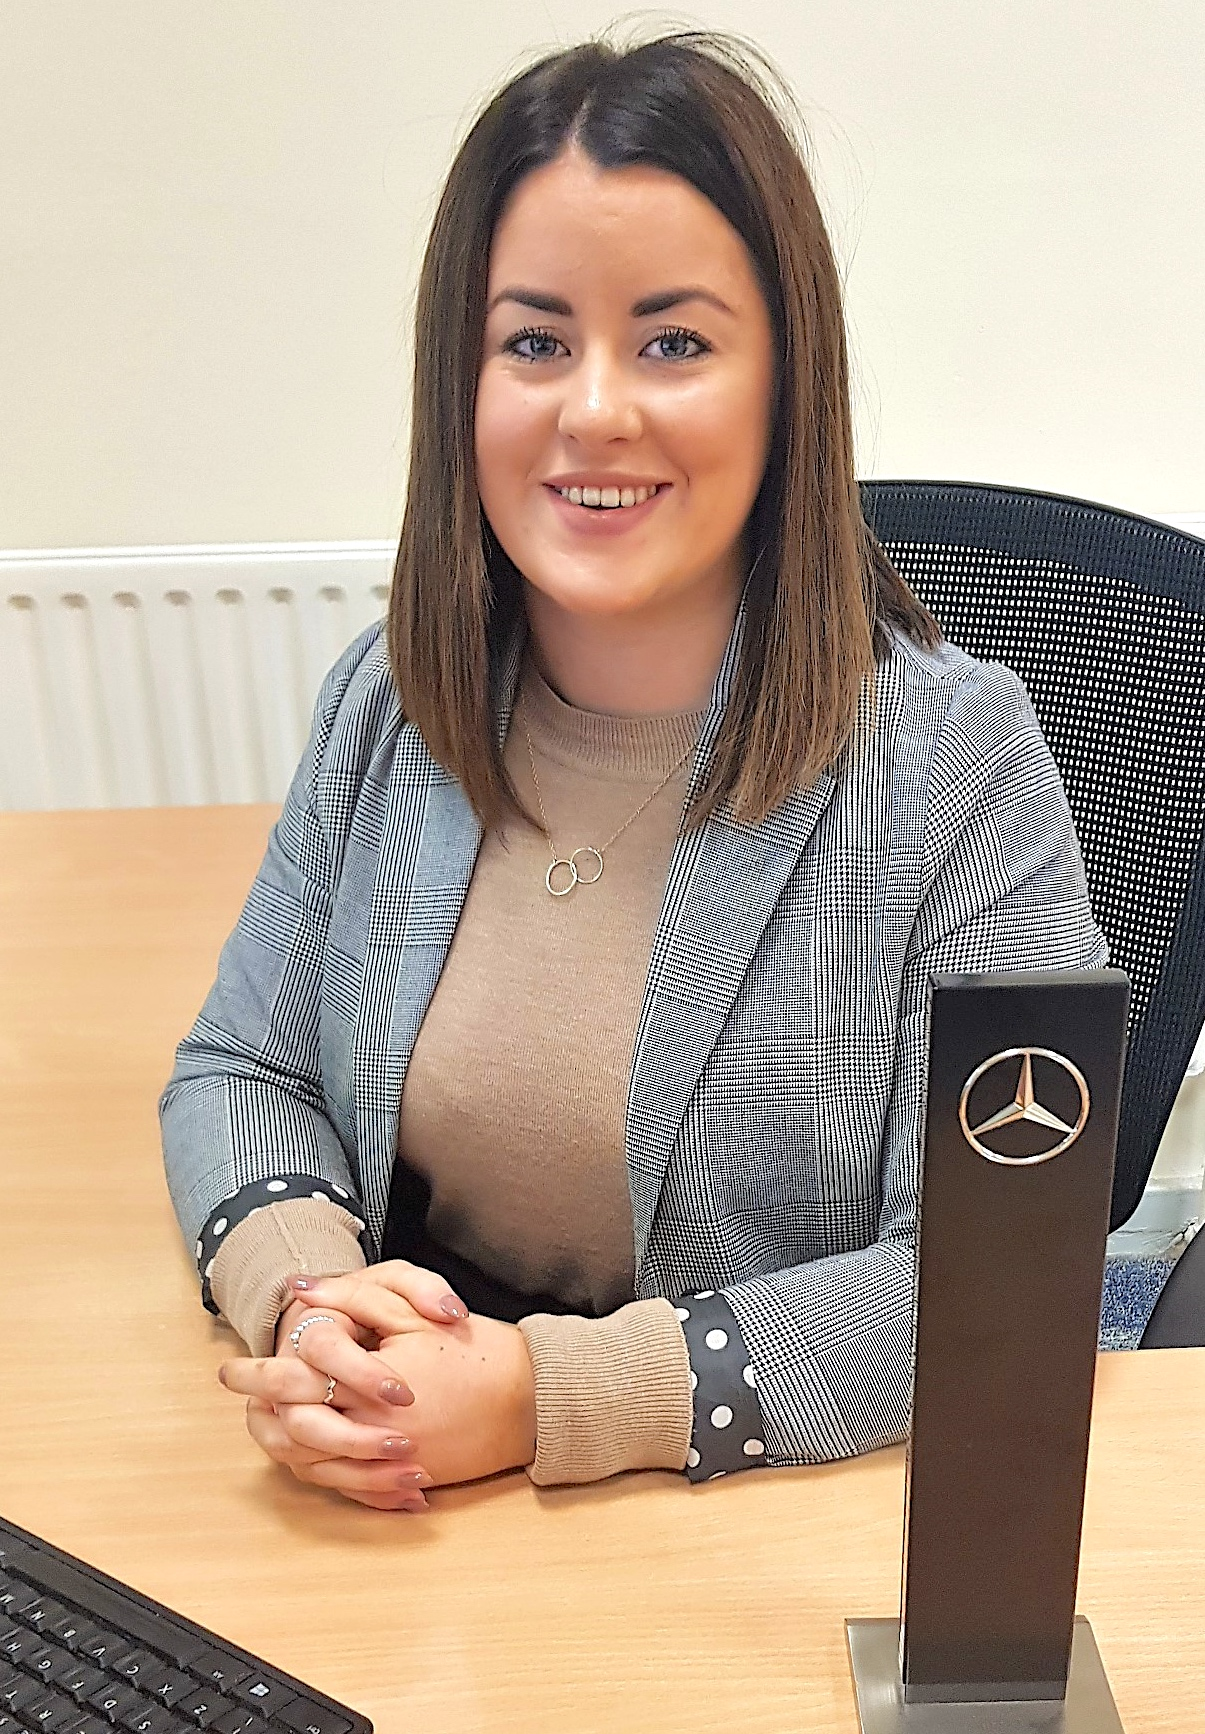 Mercedes-Benz Commercials Ireland appoints new marketing executive